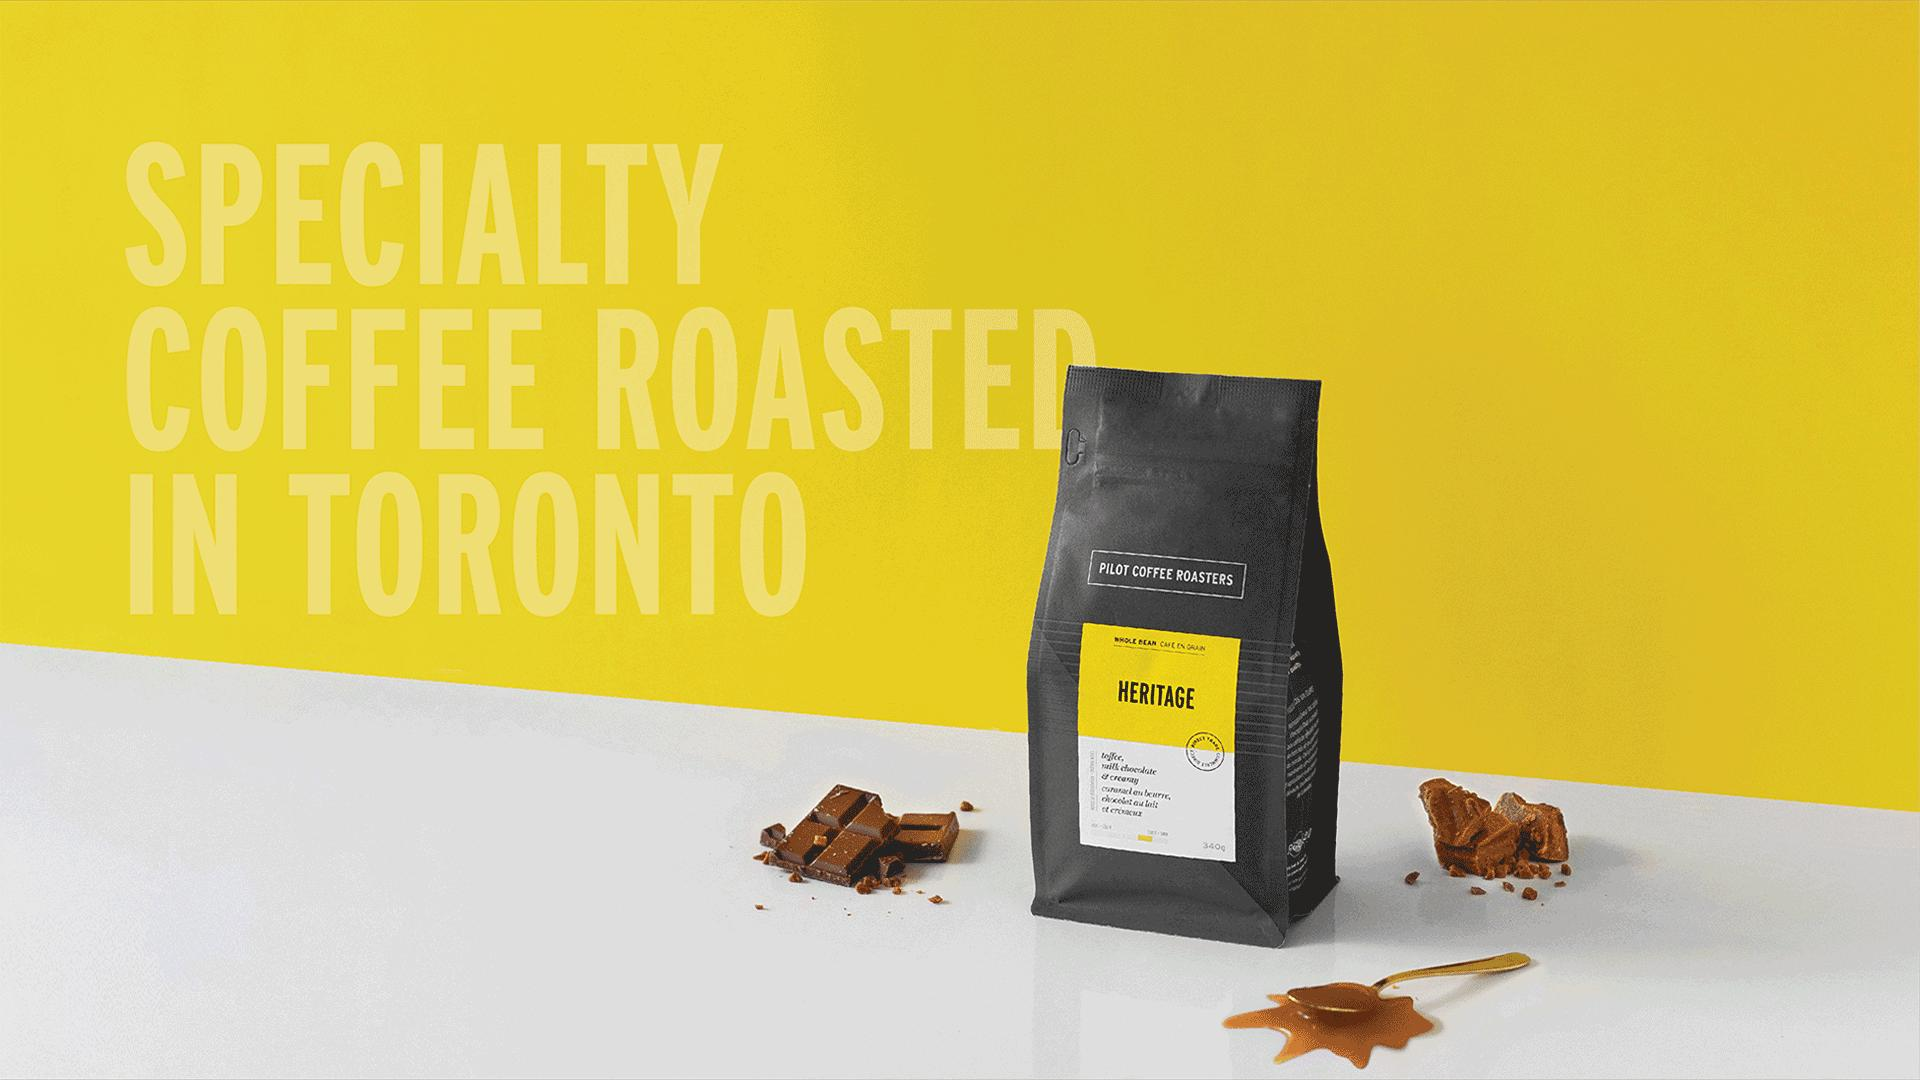 Win a six month Pilot Coffee subscription | Specialty coffee roasted in Toronto